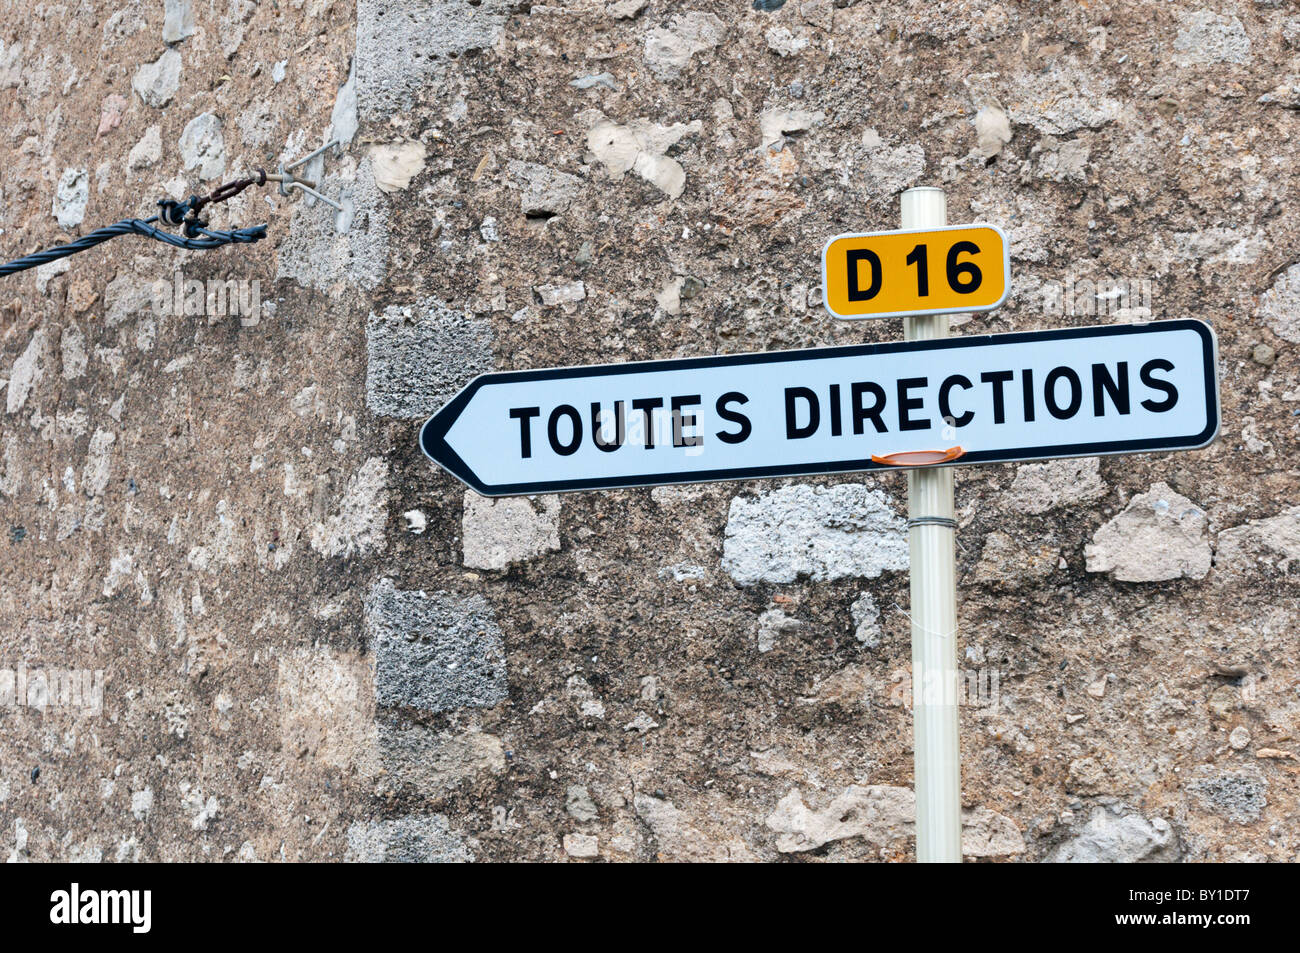 French 'Toutes Directions' (All Directions) road sign. - Stock Image